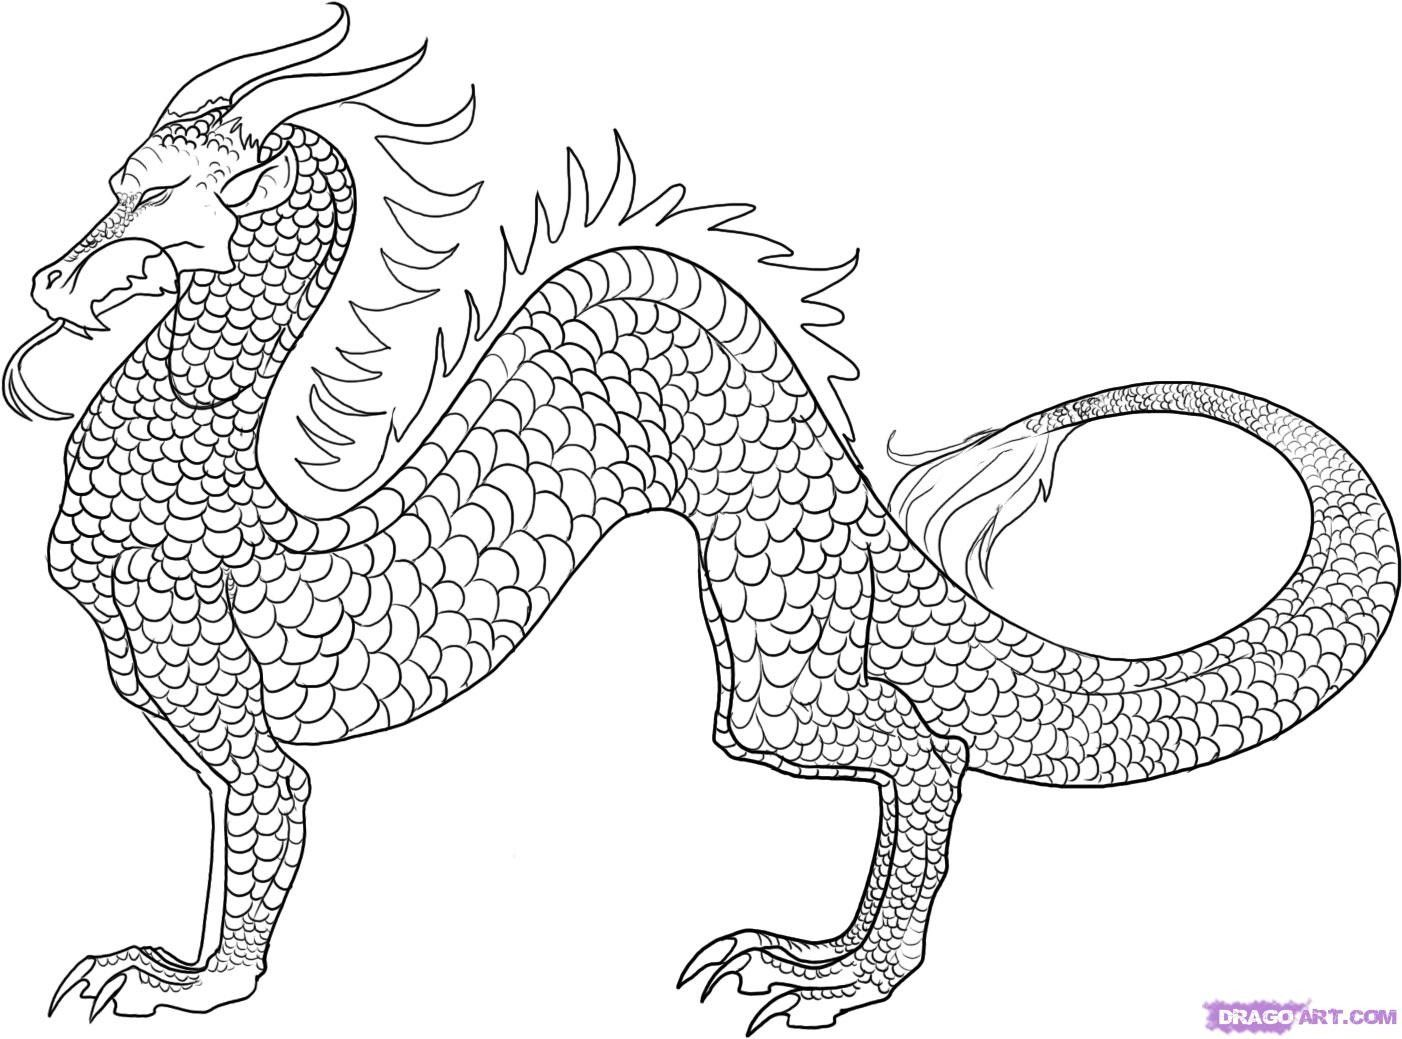 Free printable japanese coloring pages for adults - Realistic Dragon Coloring Pages Printable Japanese Dragon Coloring Sheets